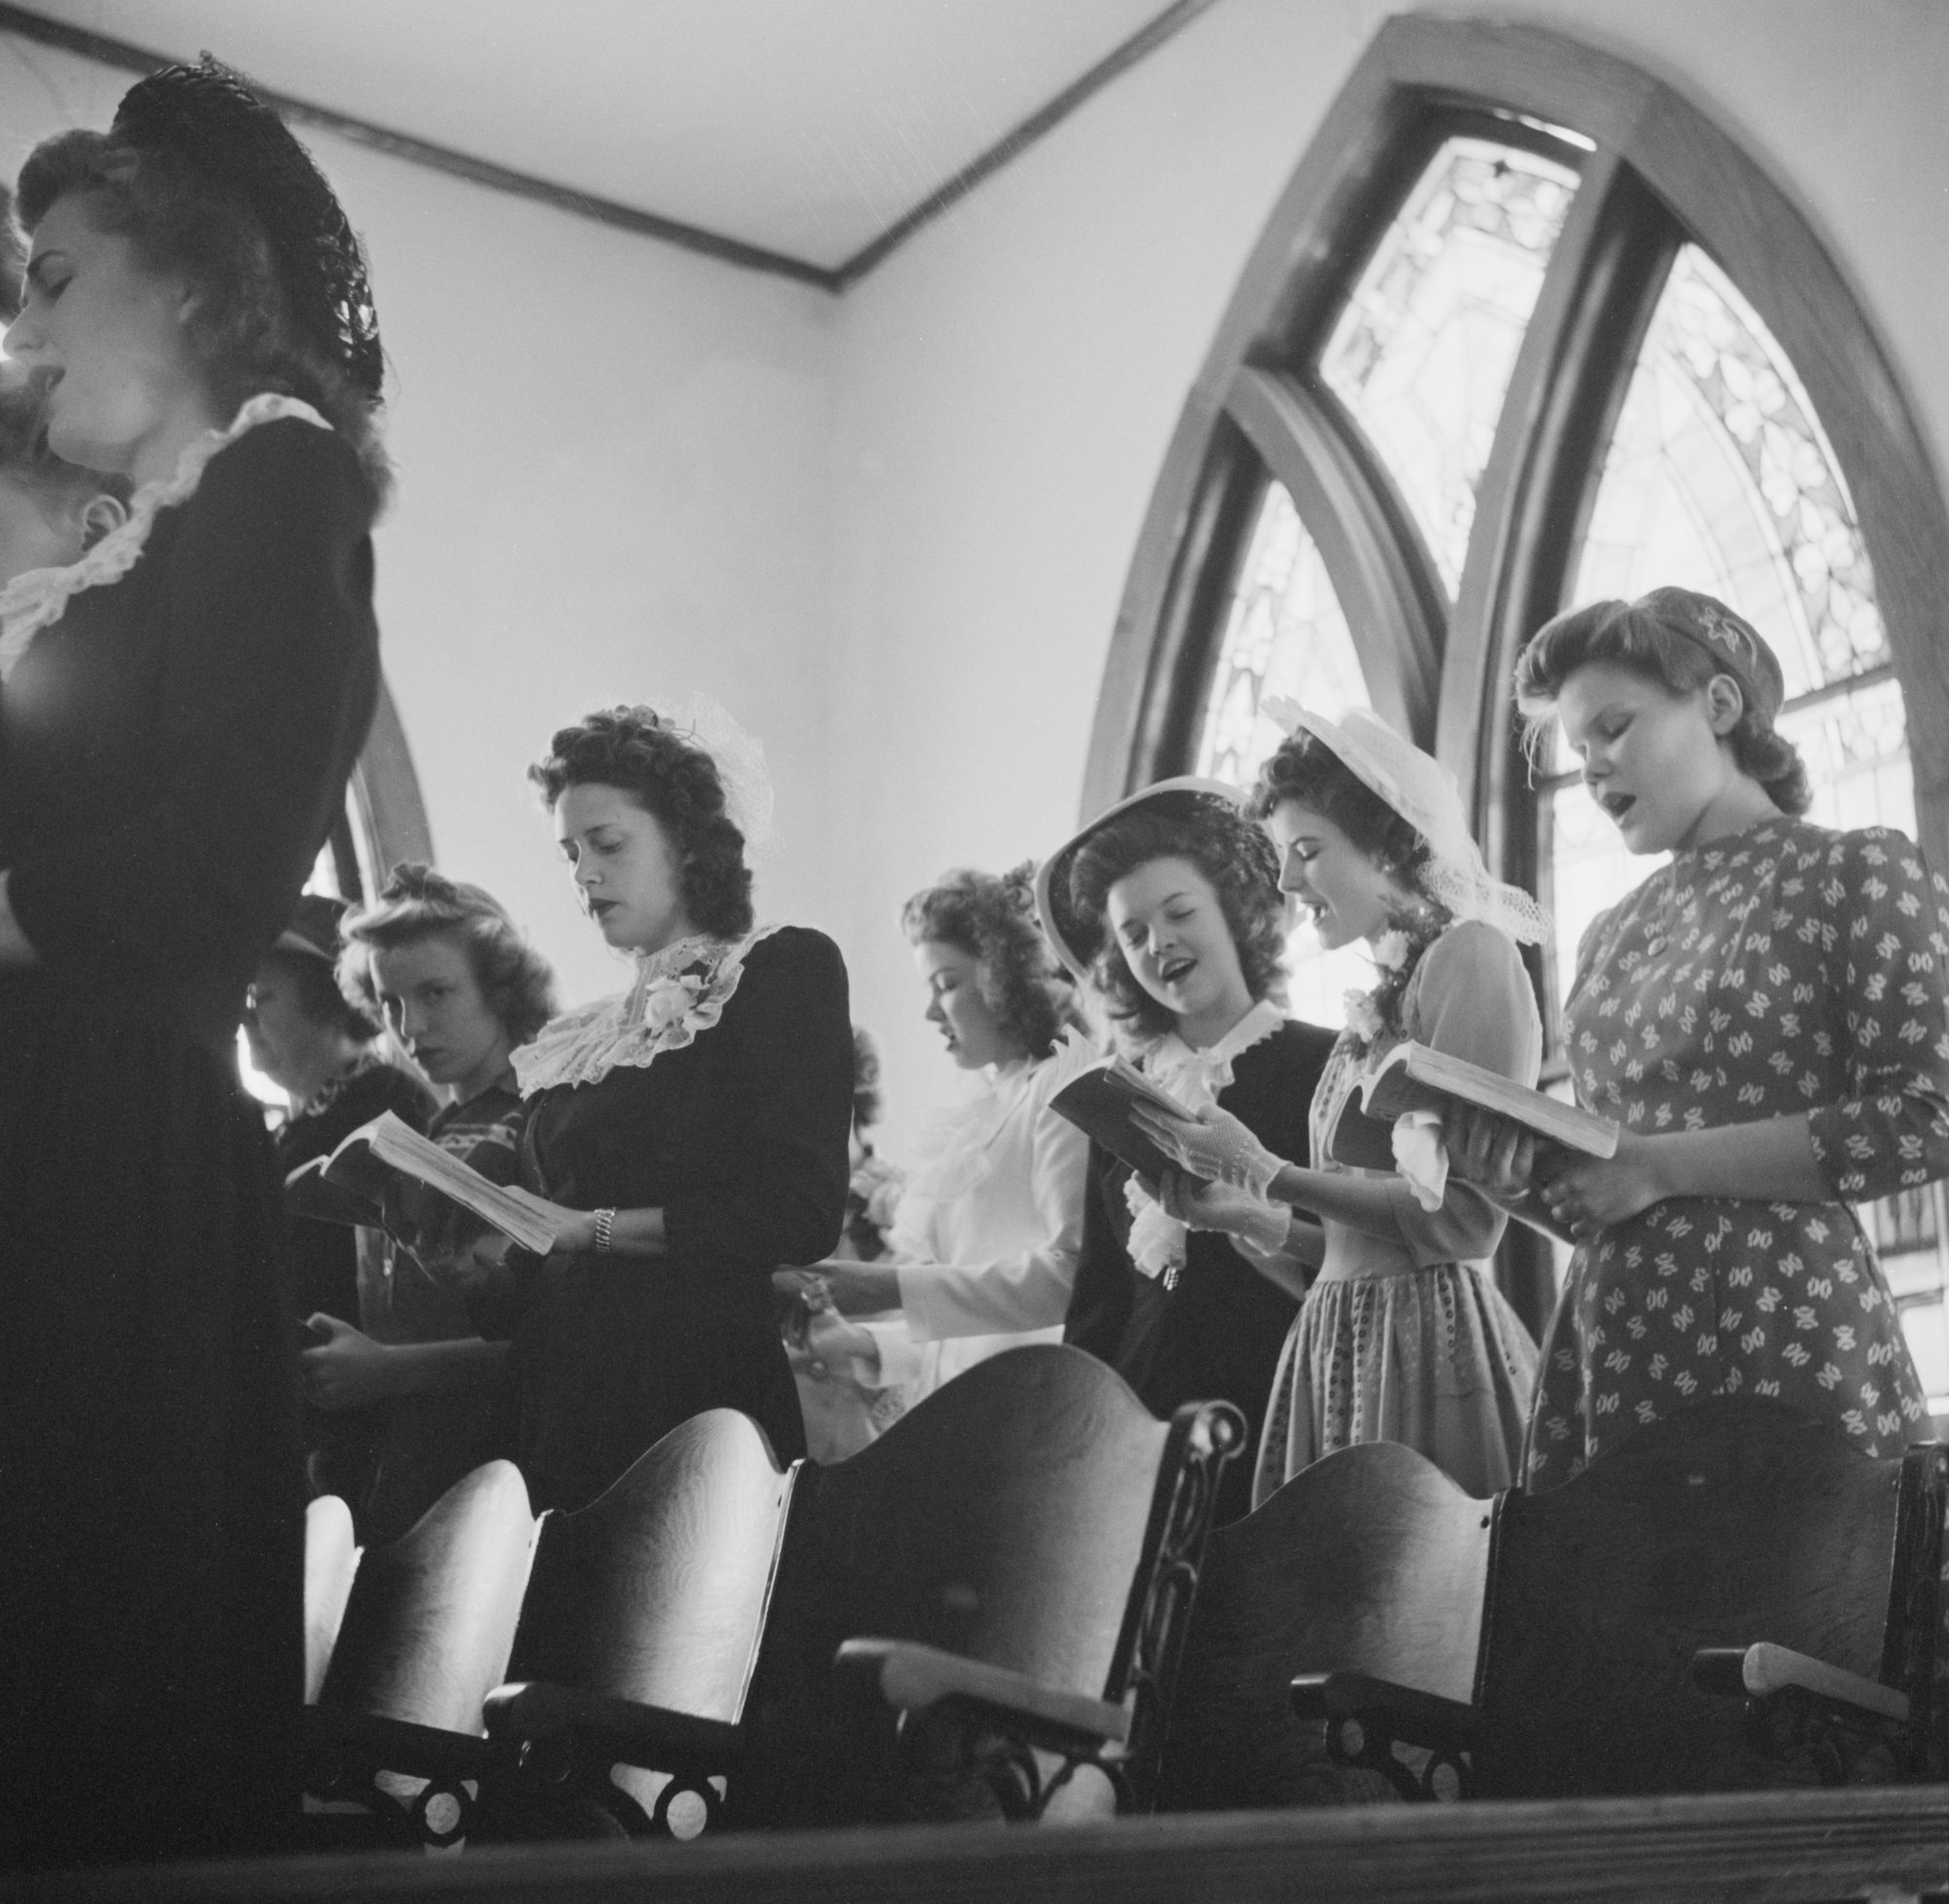 Women in Church Singing